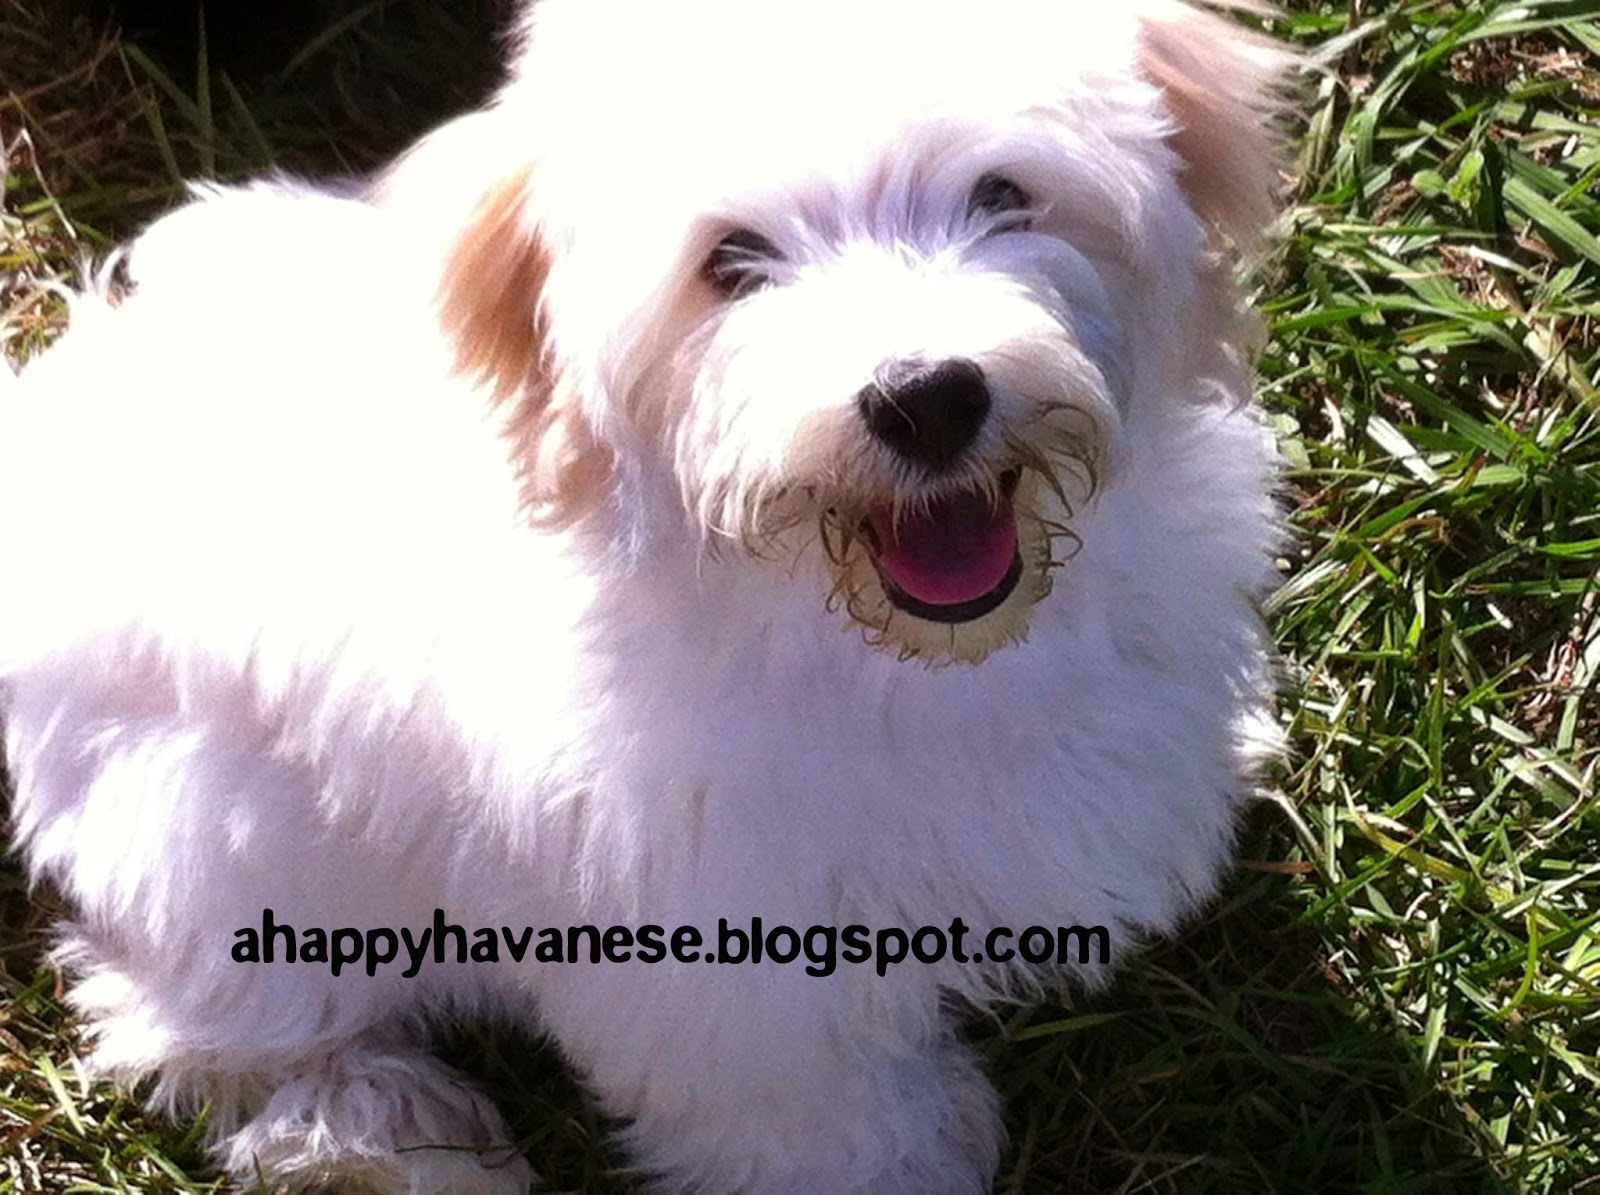 A Happy Havanese